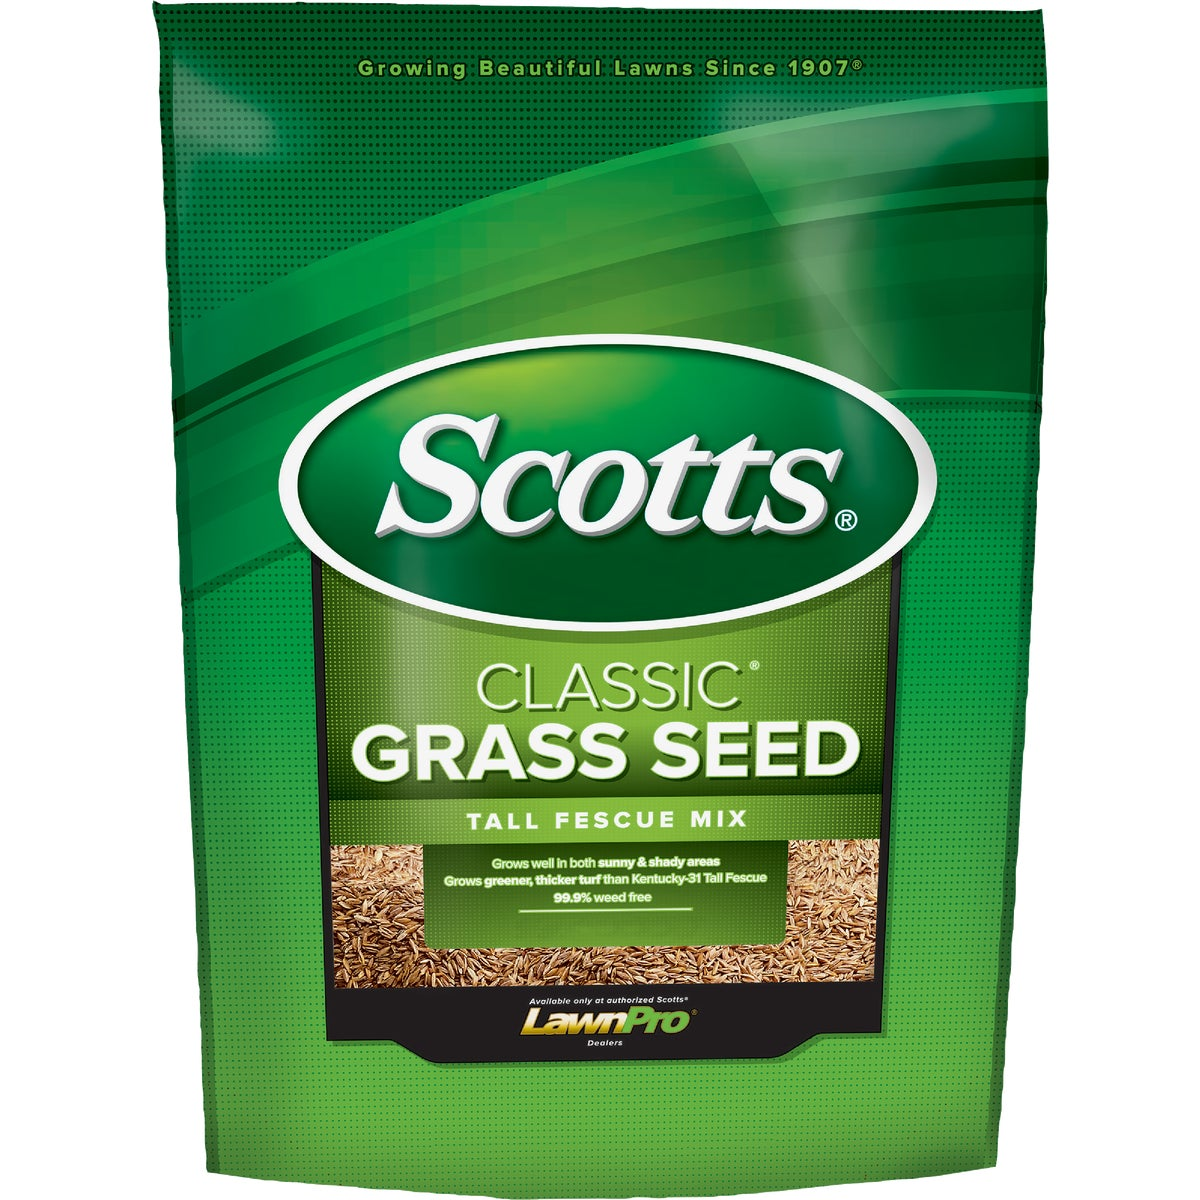 3LB CLSC TALL FESCUE MIX - 17323 by Scotts Company